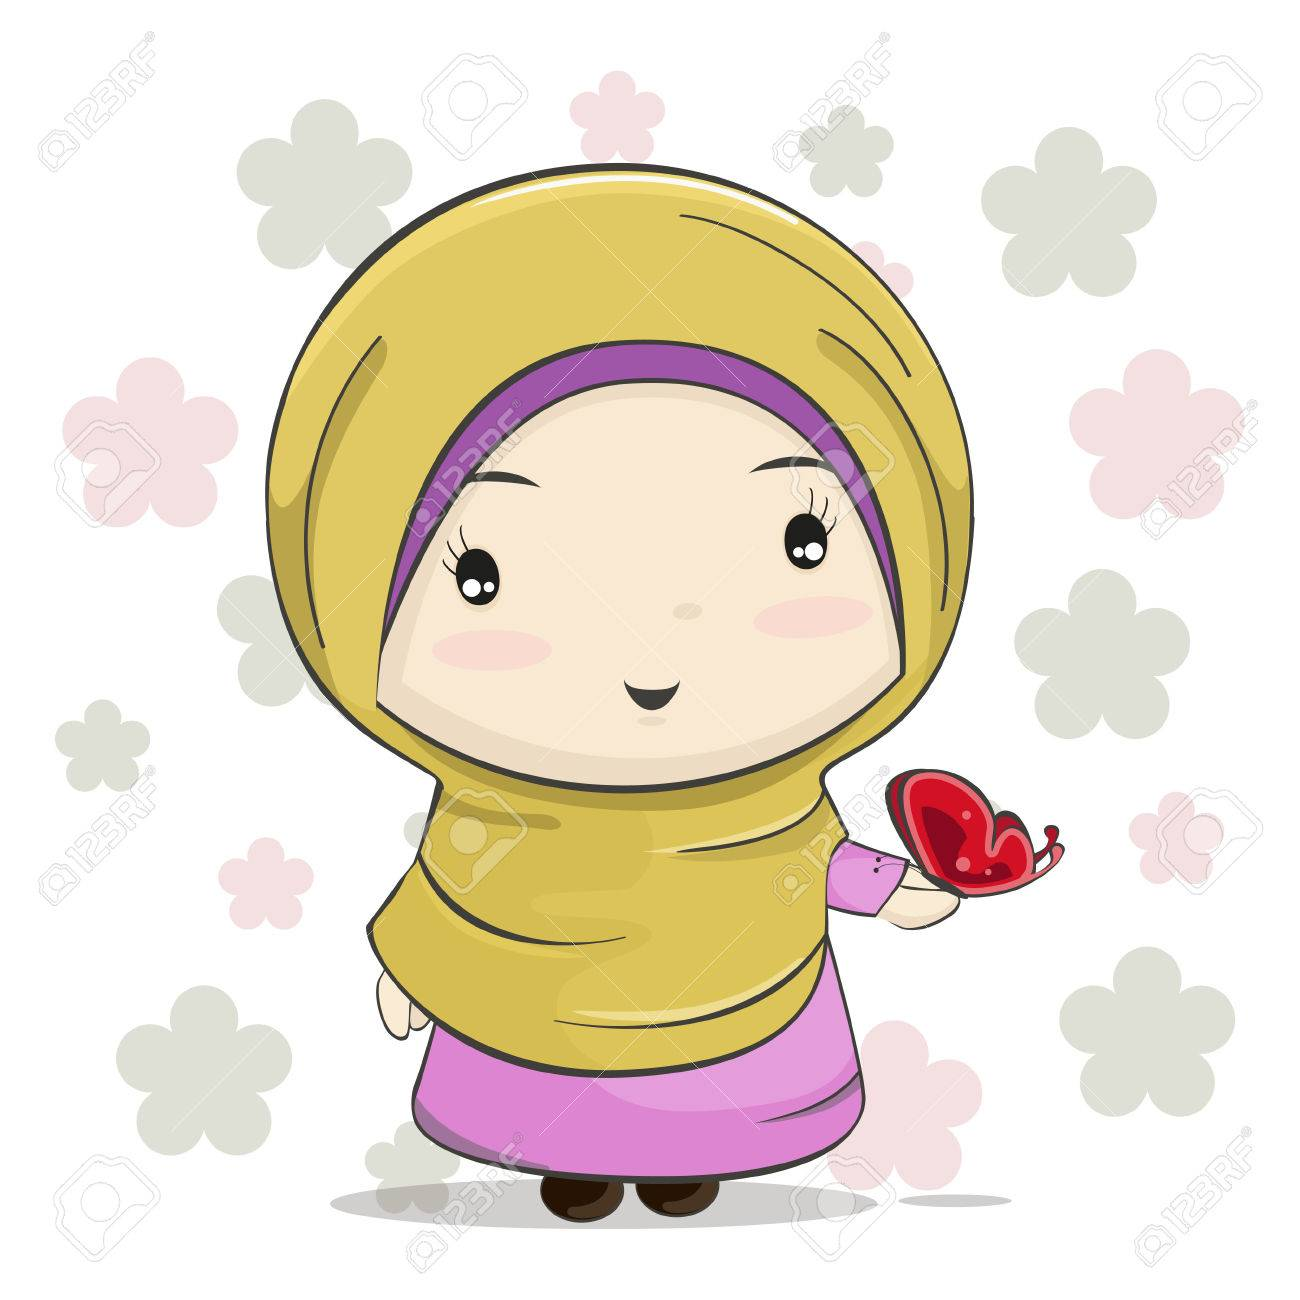 A cute muslim girl cartoon with red butterfly on her hand vector illustration stock vector